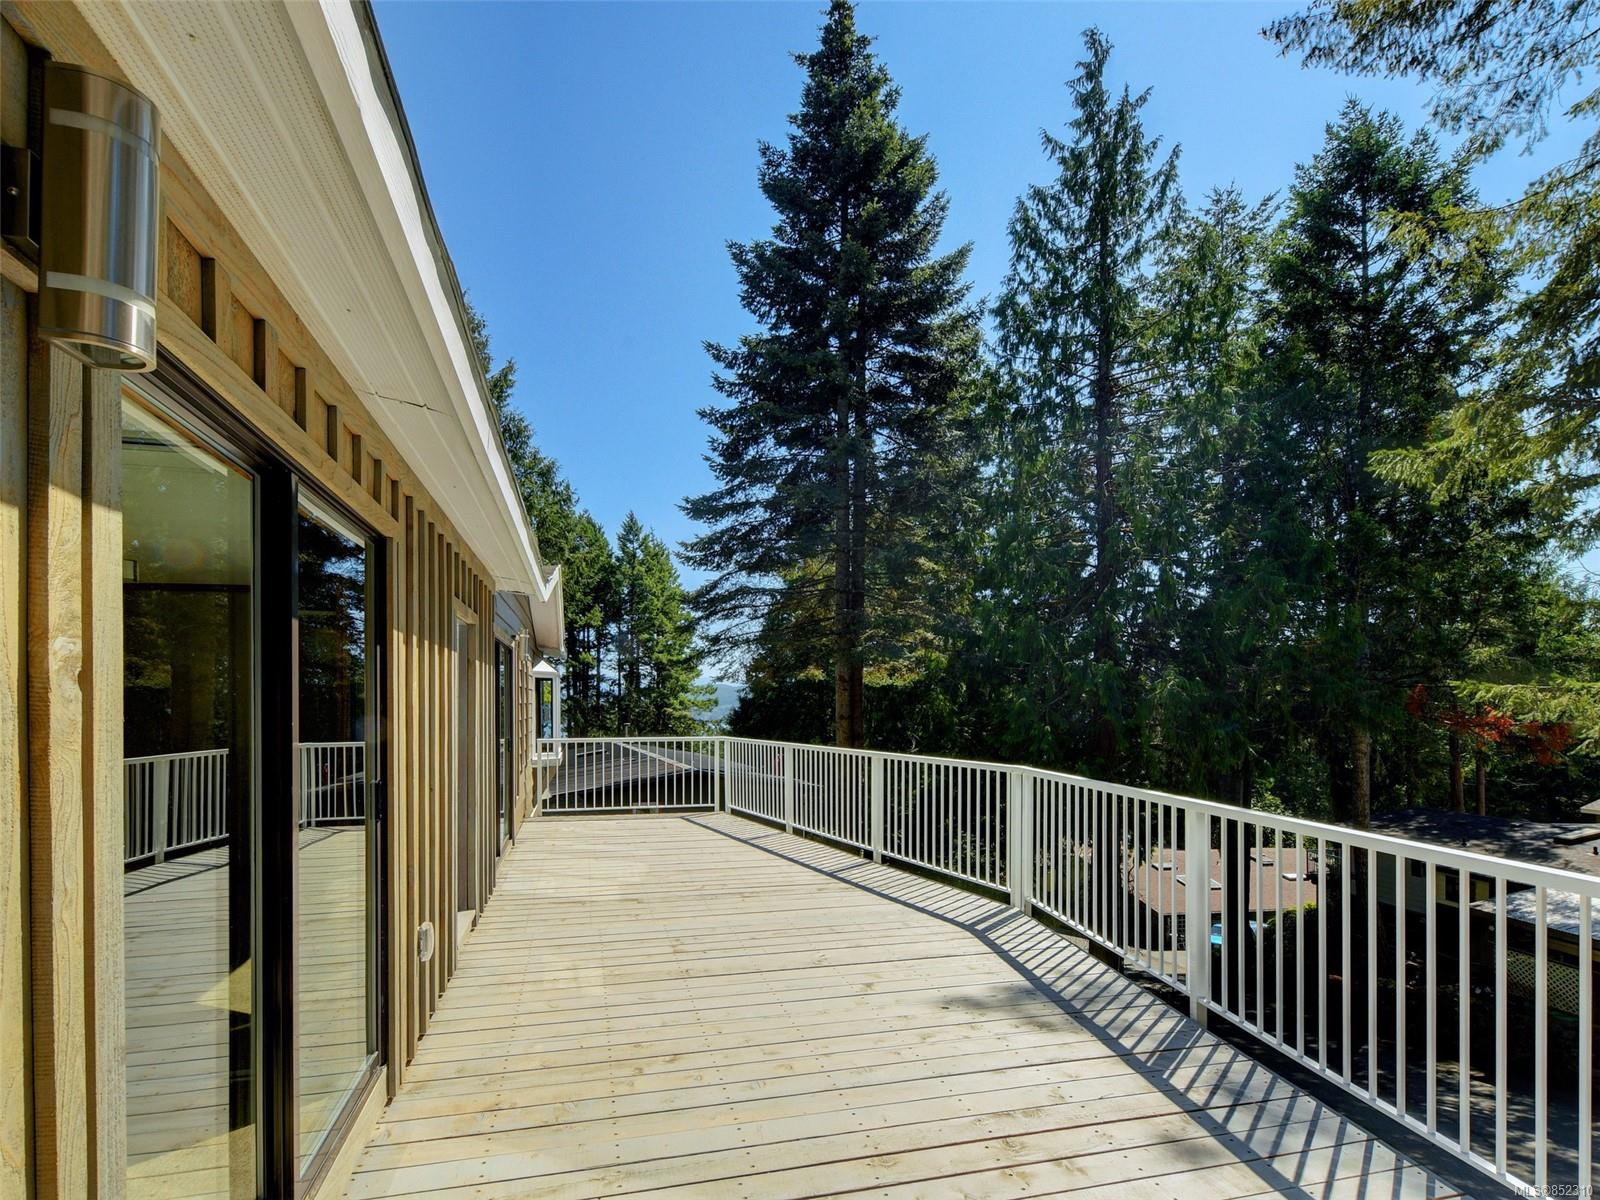 Photo 19: Photos: 94 5838 Blythwood Rd in : Sk Saseenos Manufactured Home for sale (Sooke)  : MLS®# 852310